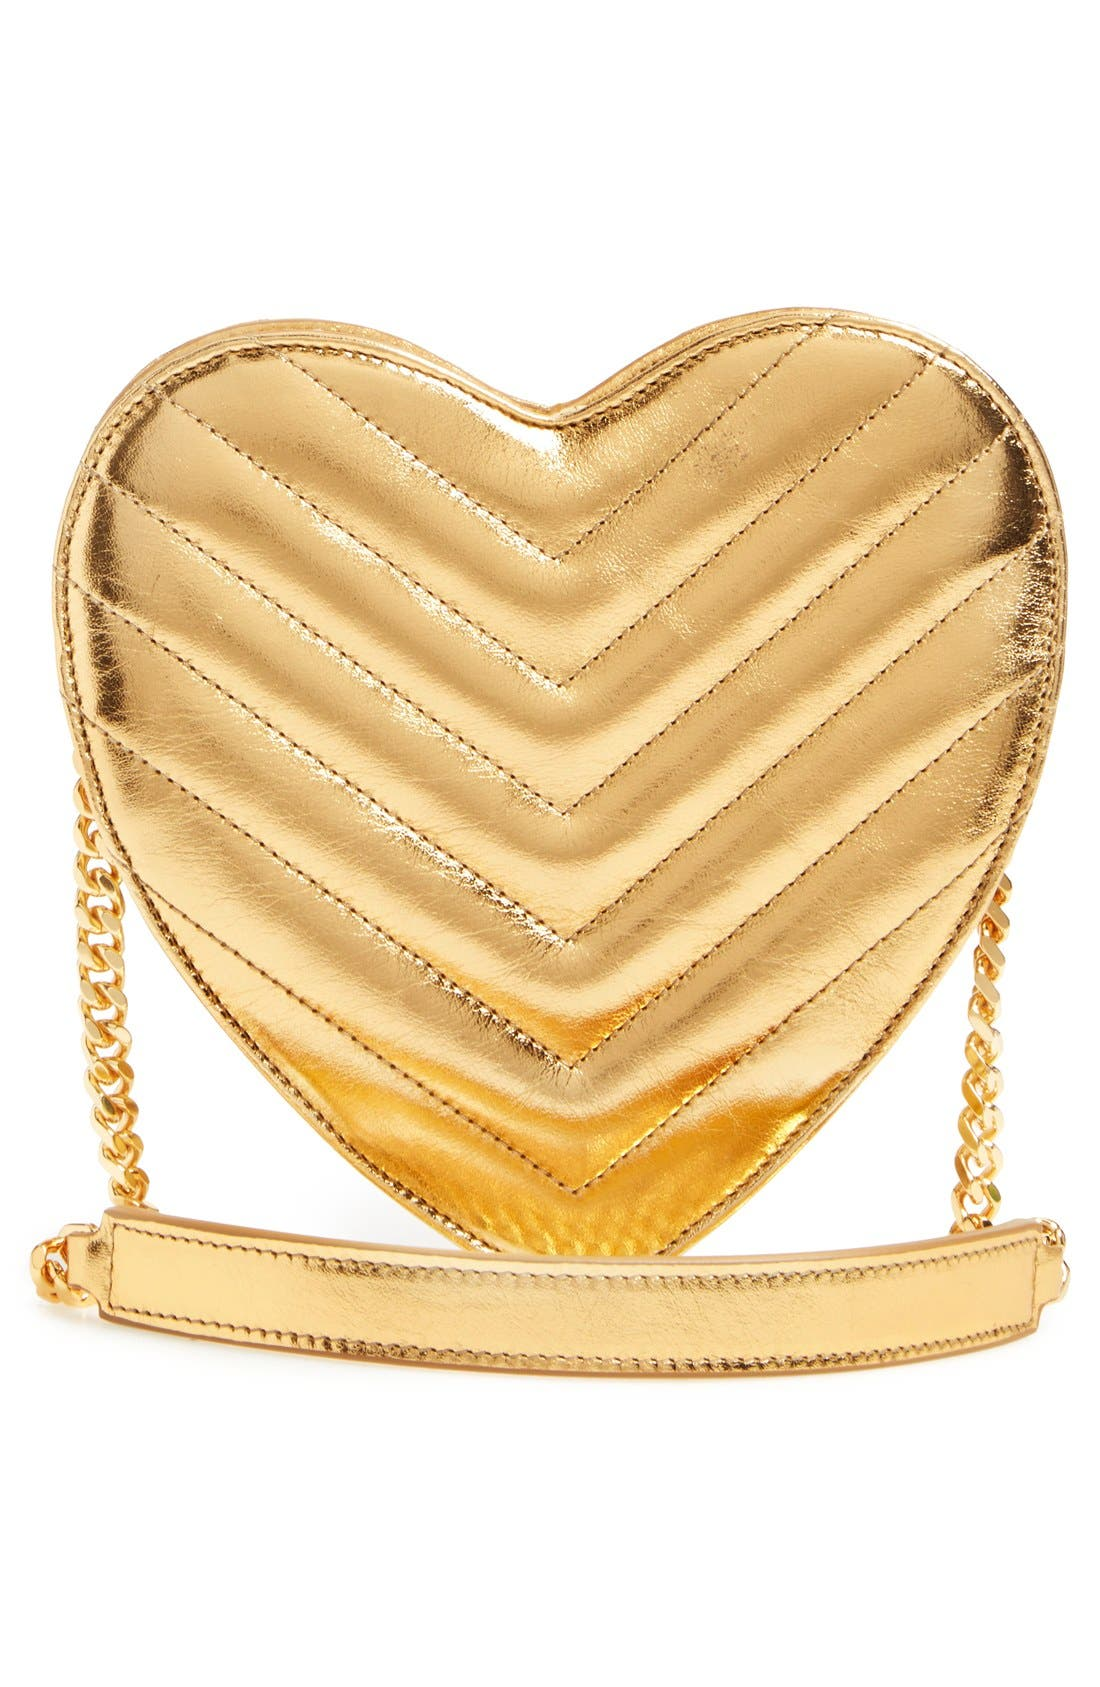 SAINT LAURENT,                             'Small Heart' Quilted Leather Crossbody Bag,                             Alternate thumbnail 5, color,                             717